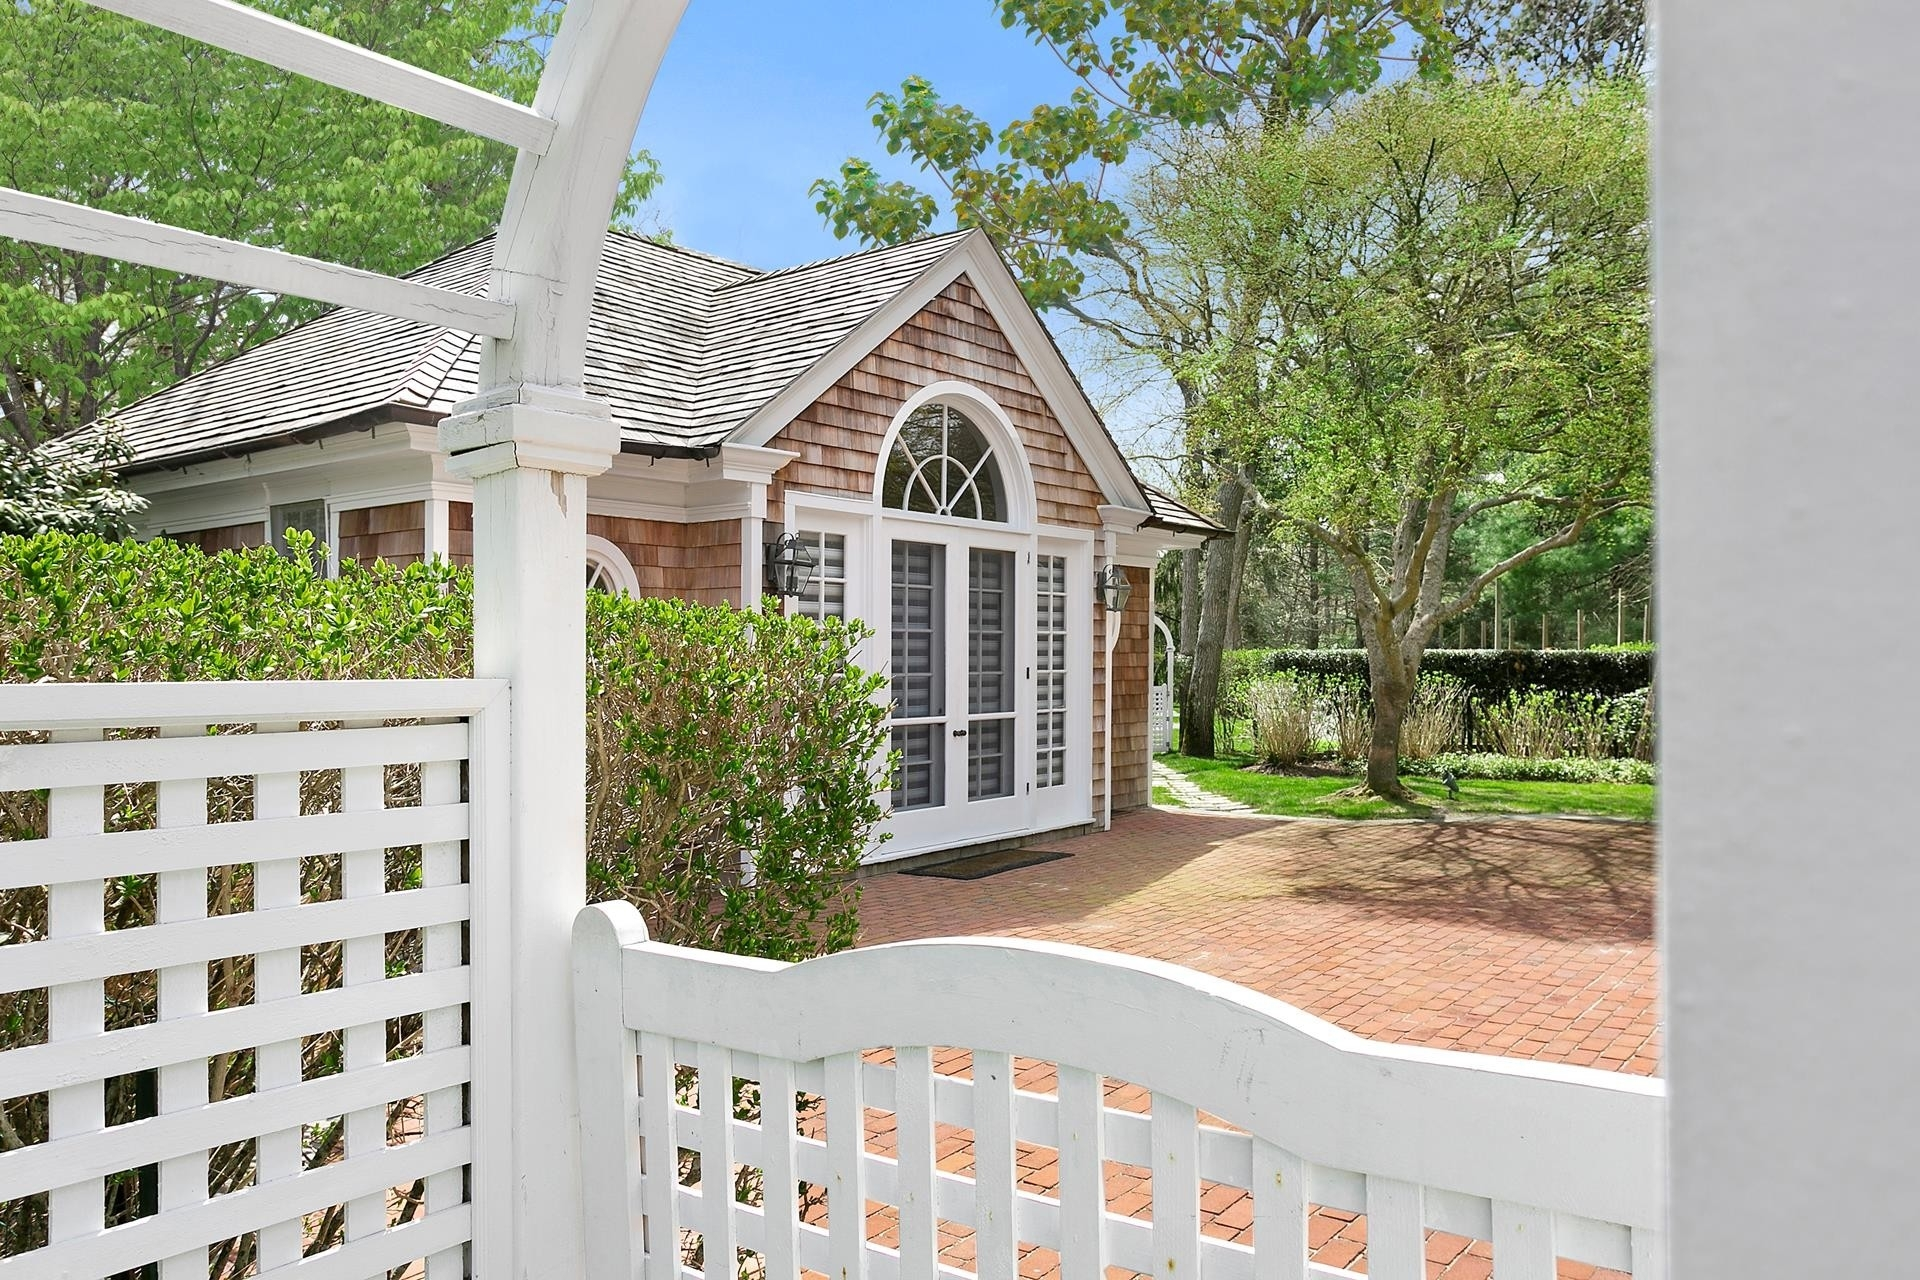 27. Single Family Homes for Sale at Quogue Village, NY 11959